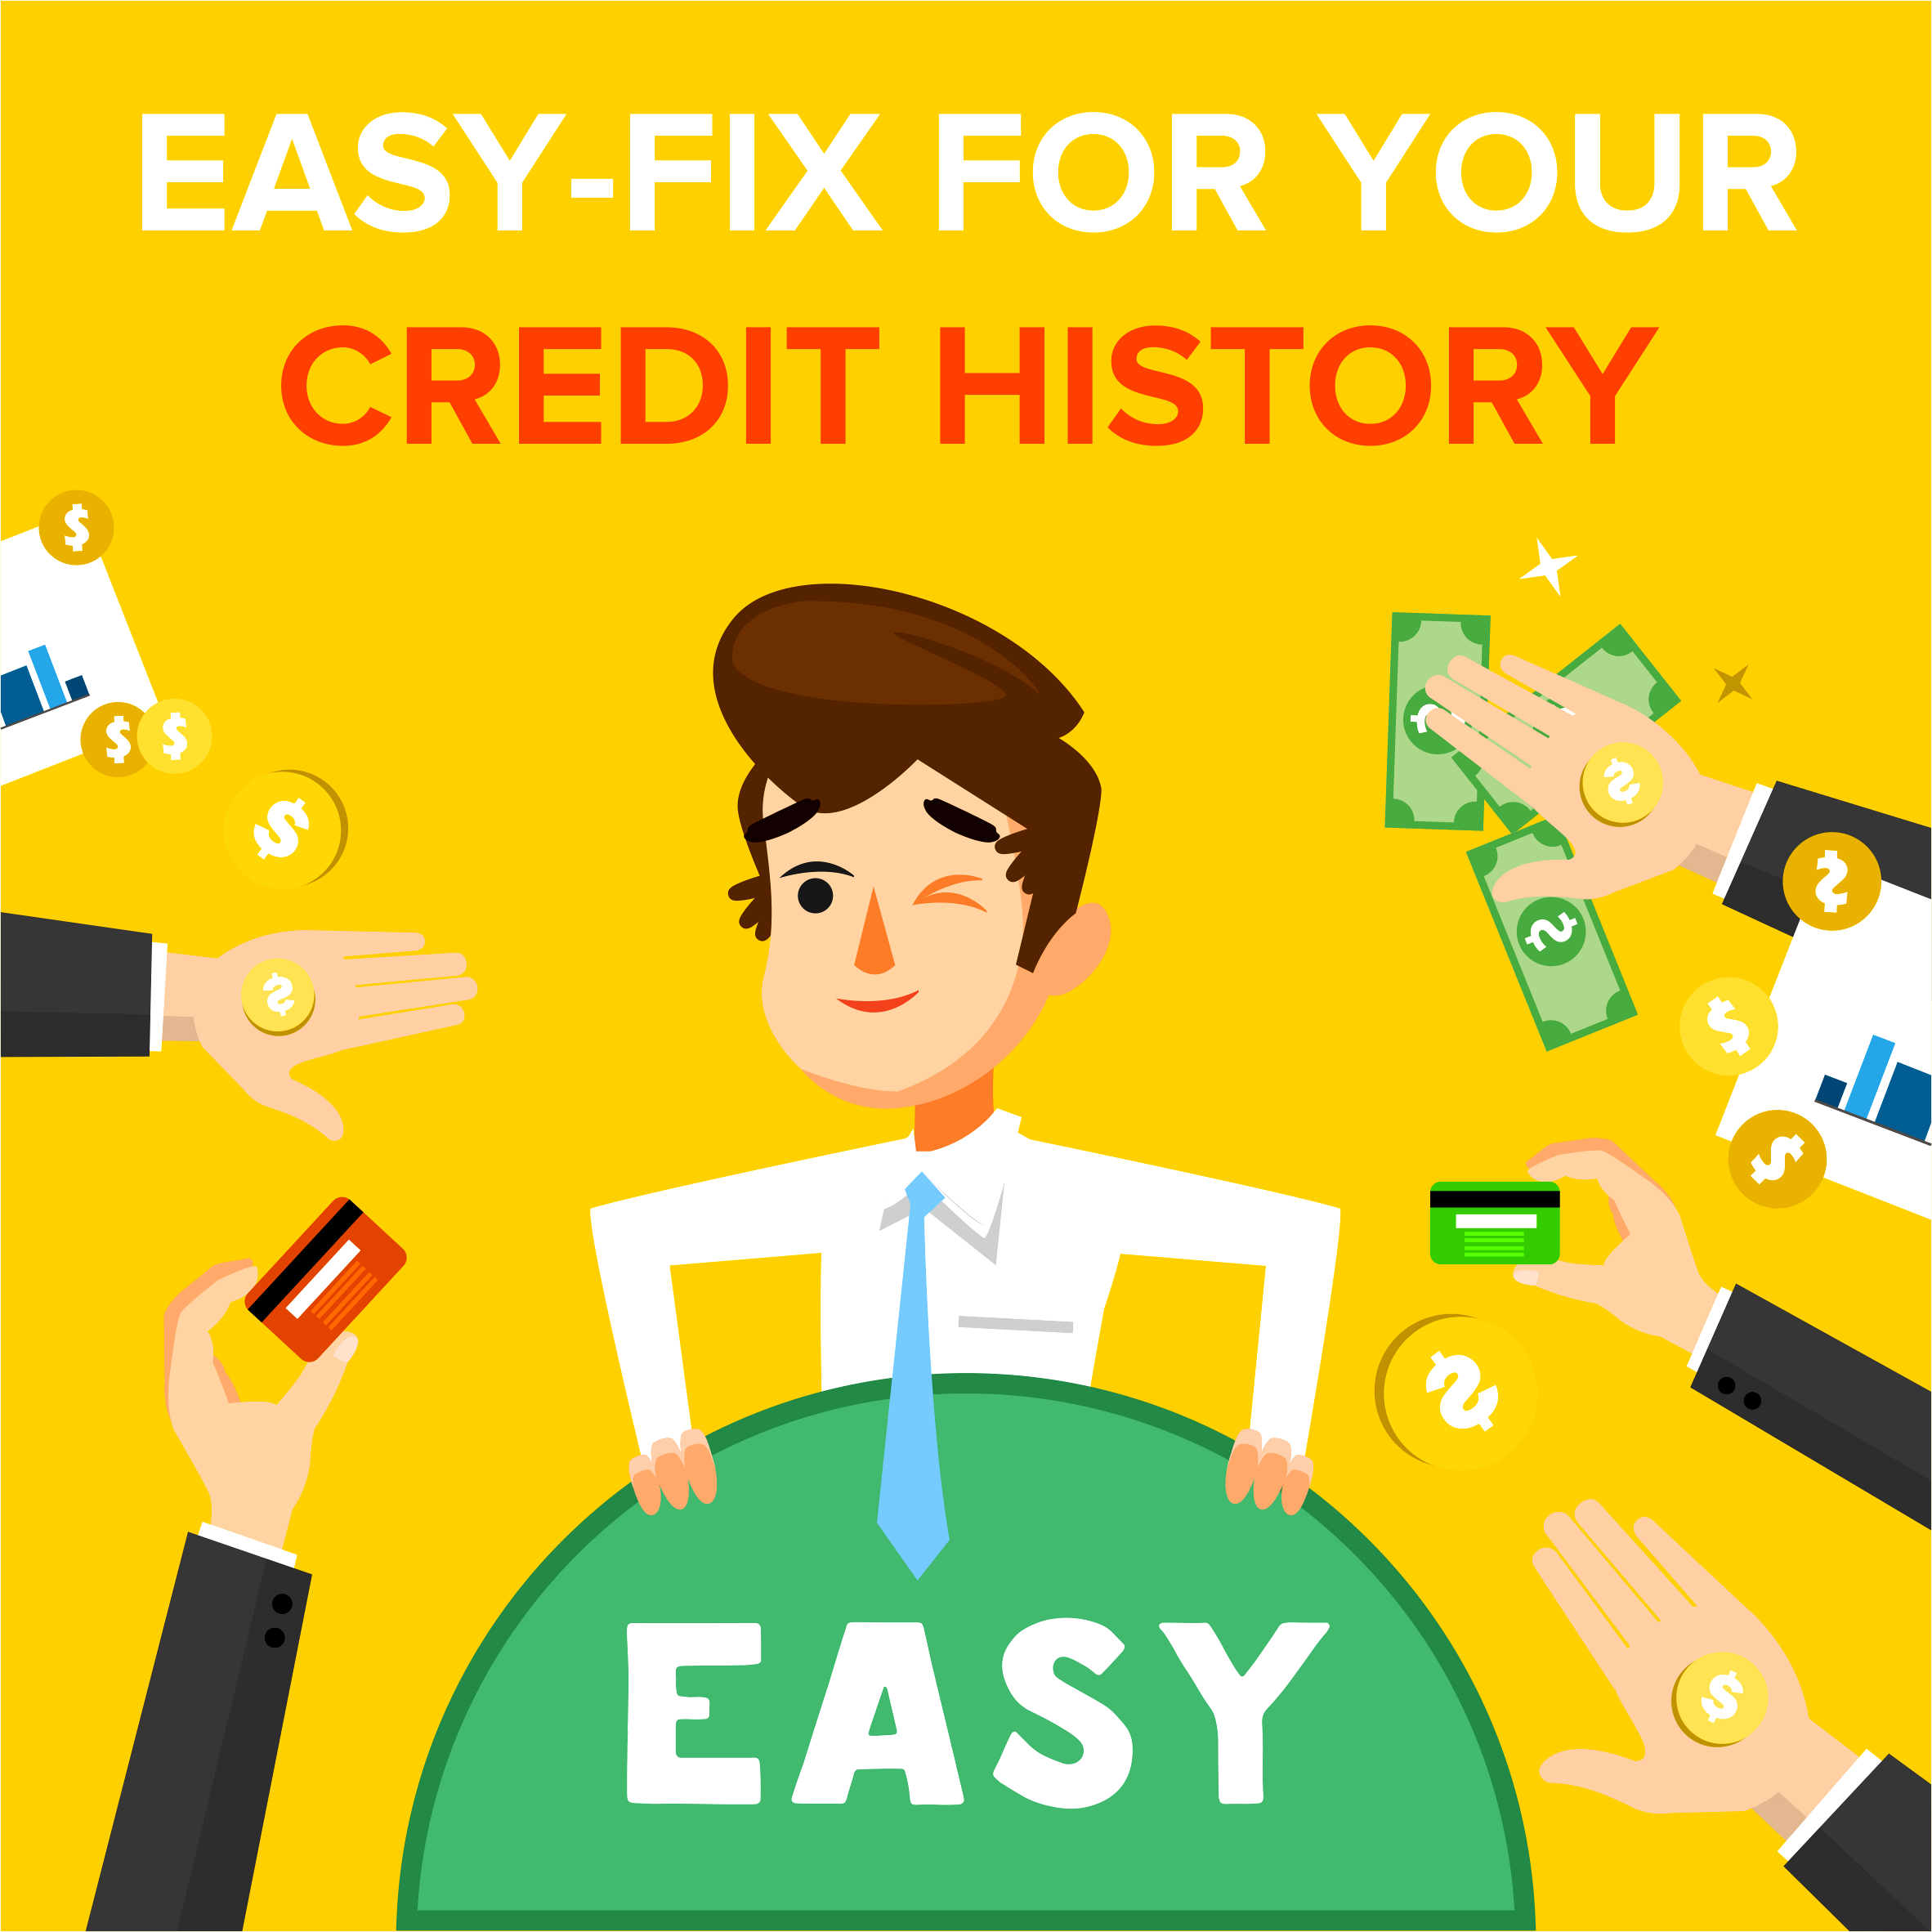 Easy-fix for Your Credit History